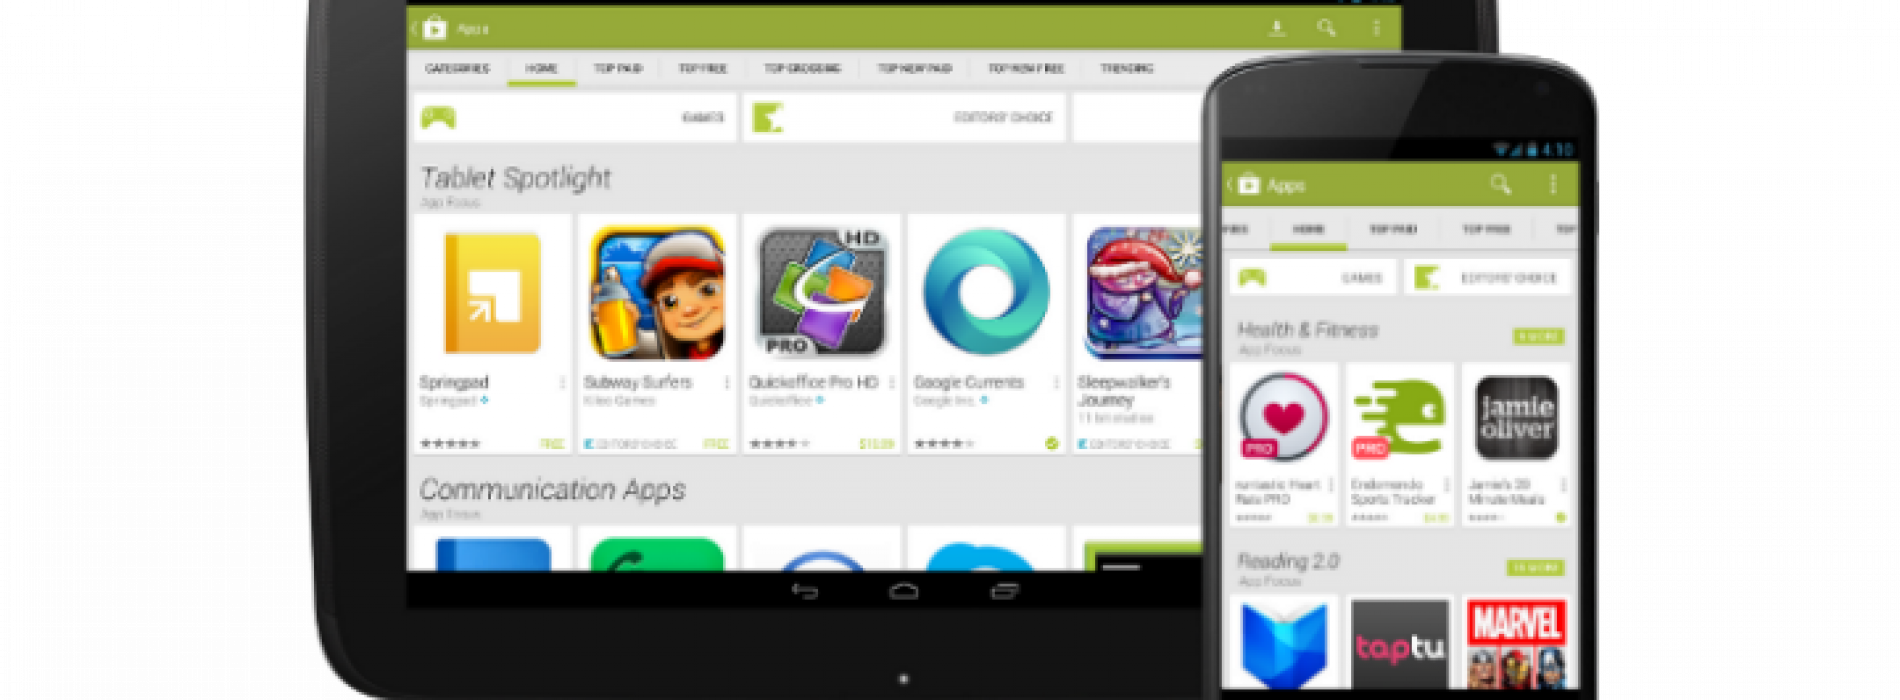 Google intros new look for Google Play Store